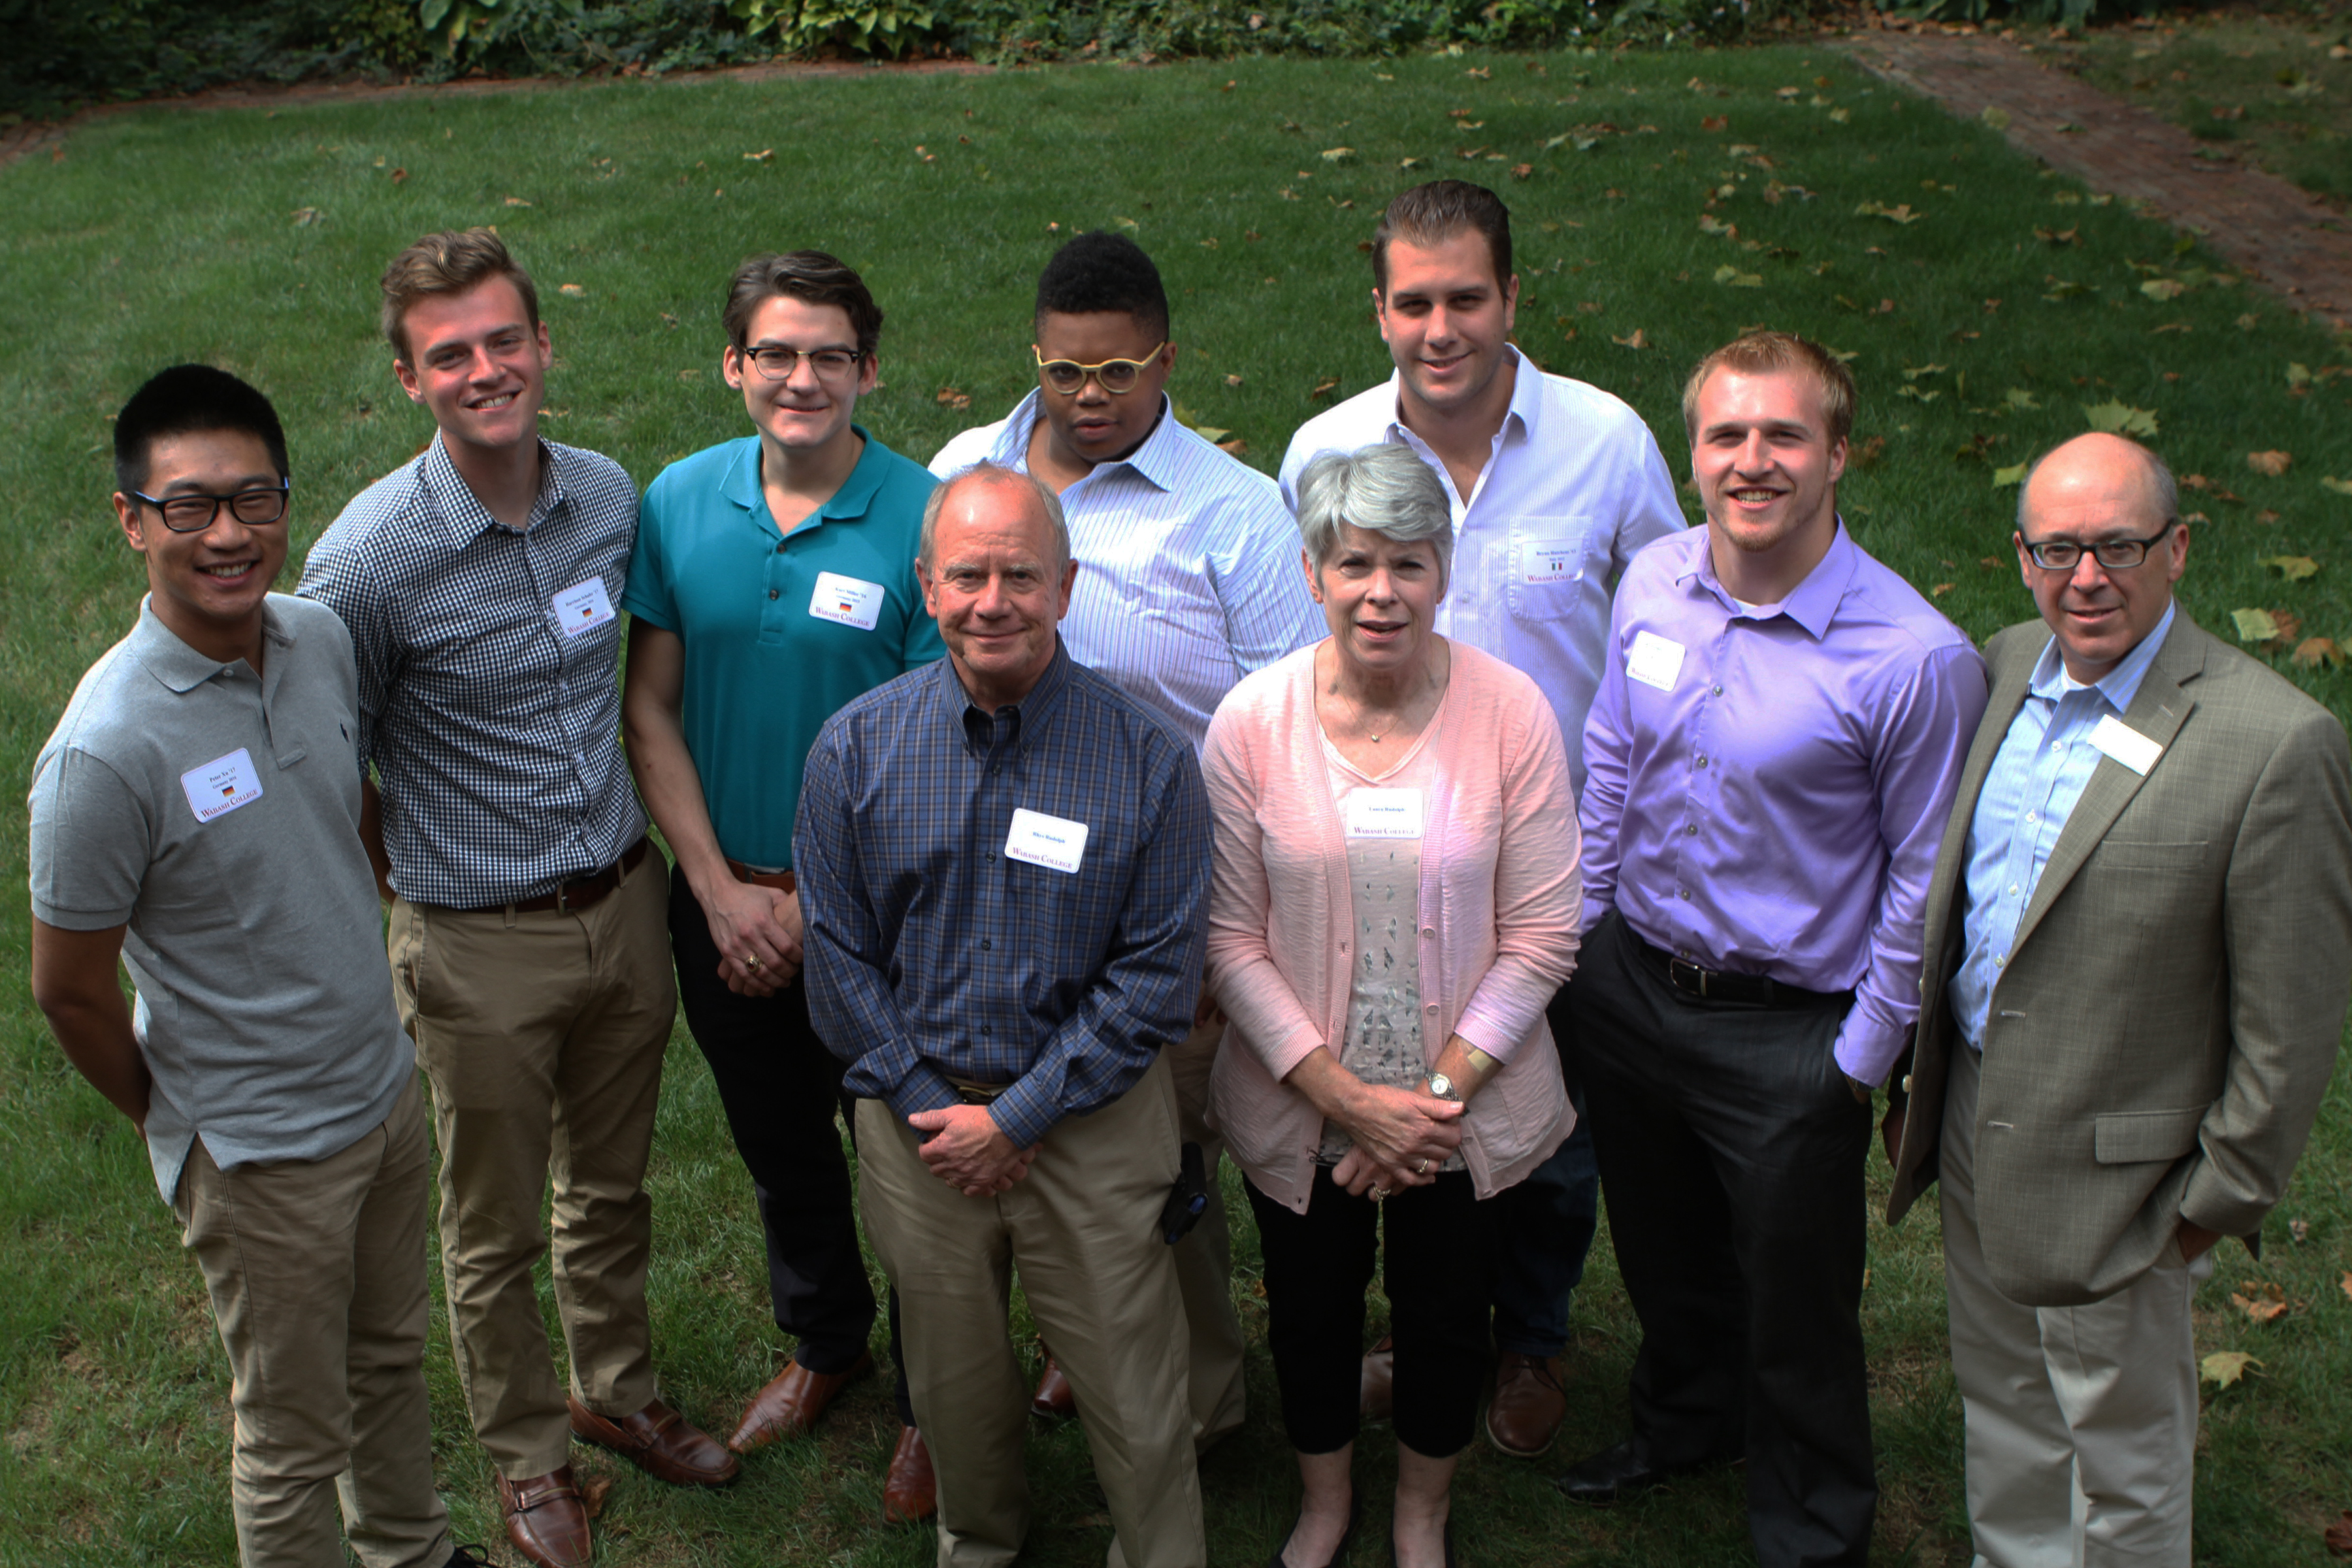 Students and alumni whose travels were sponsored by the Rudolph Memorial Fund include: (from left) Peter Xu '17, Harrison Schafer '17, Kurt Miller '16, Reggie Steele '12, Bryan Hutchens '13, and Tyler Andrews '15.